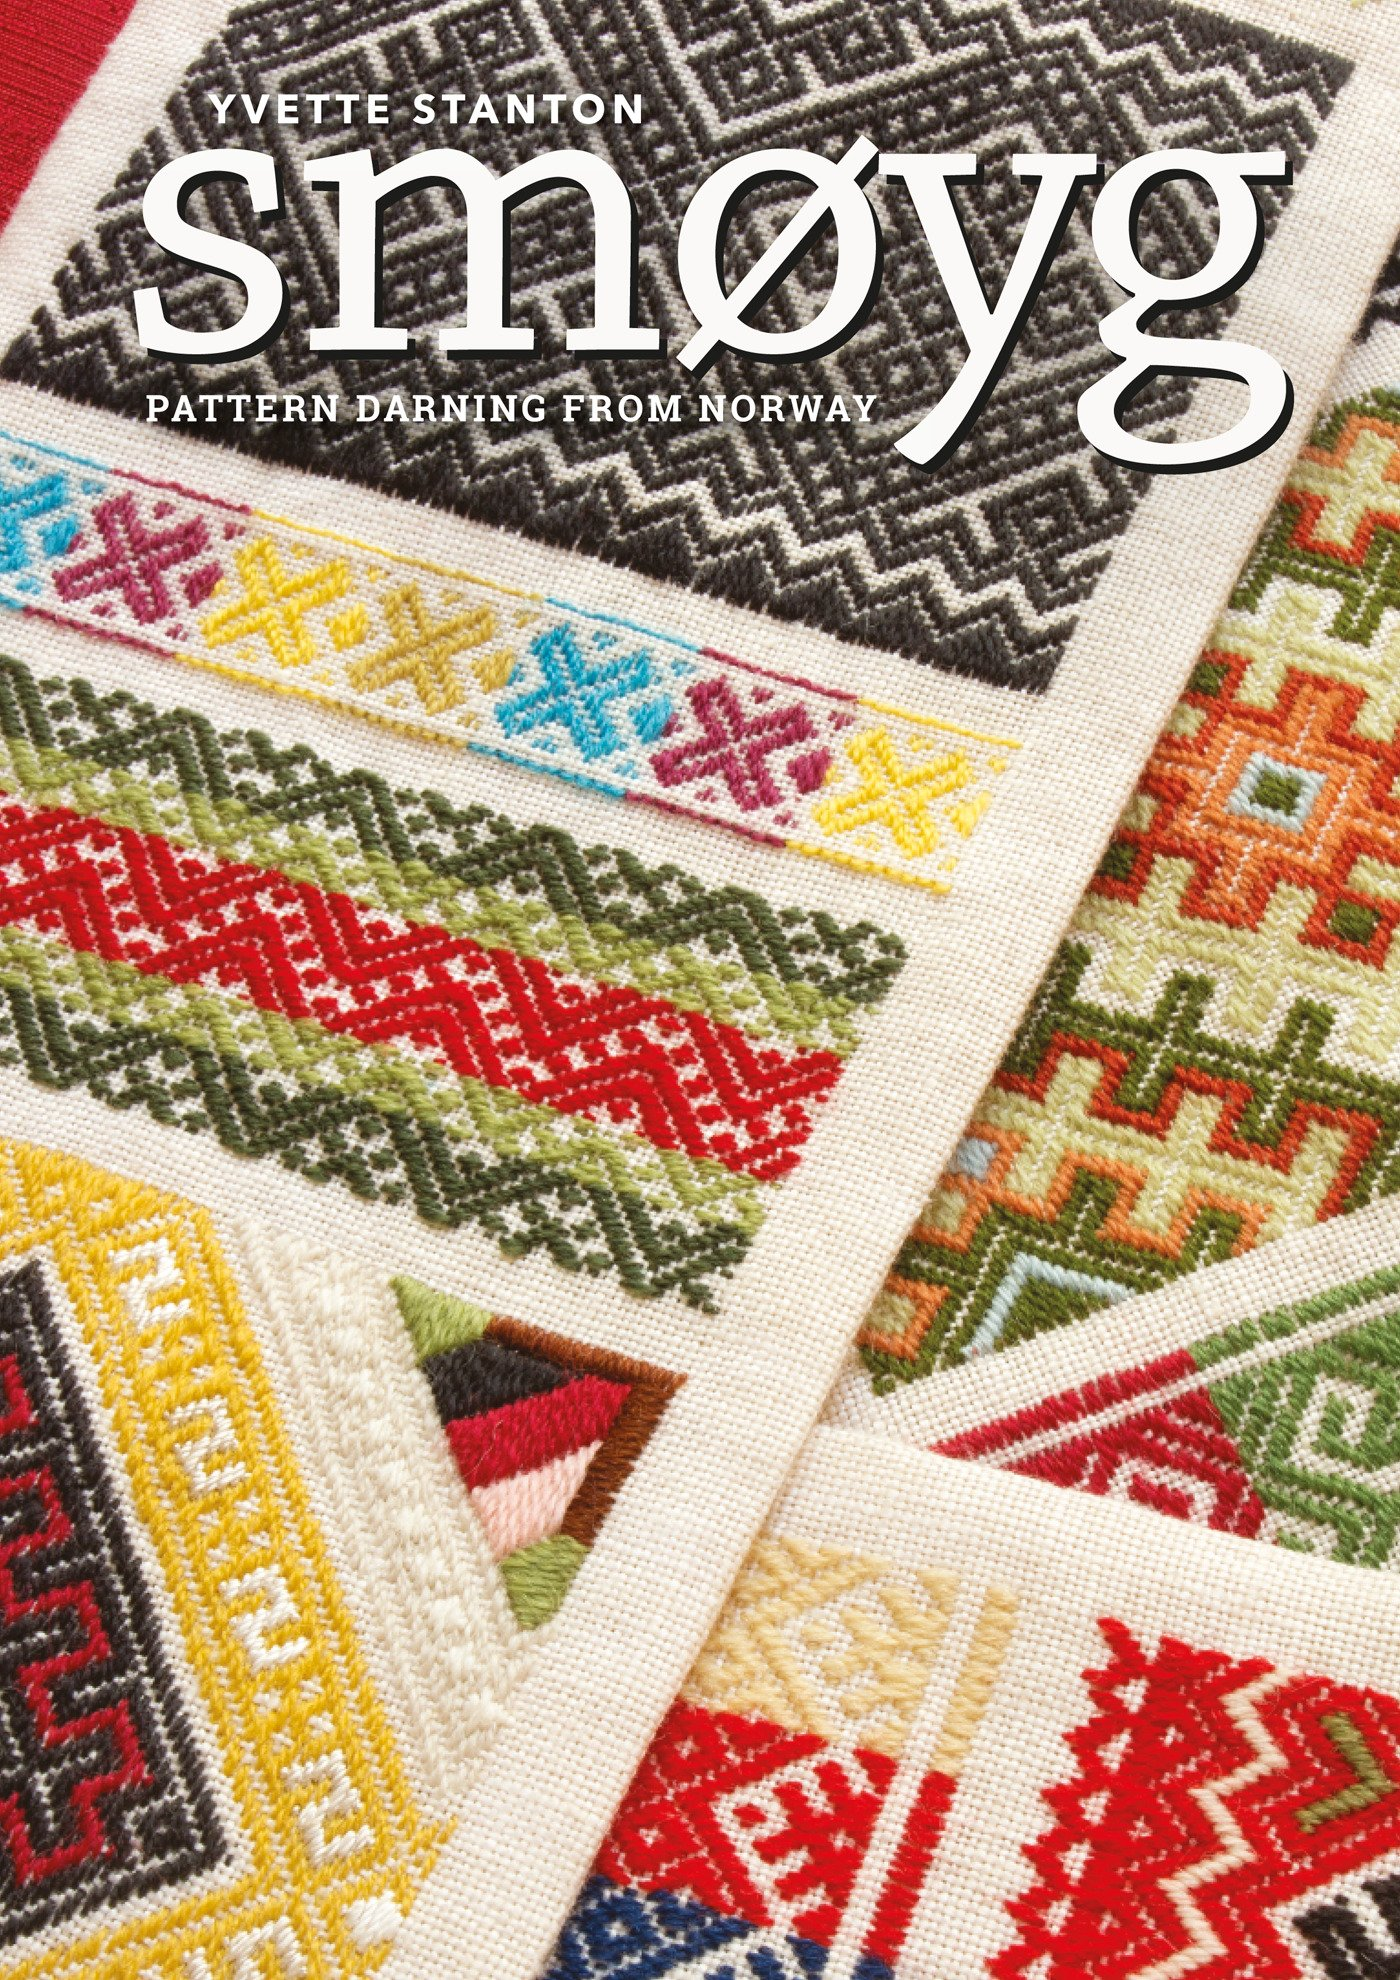 Smoyg: Pattern Darning from Norway